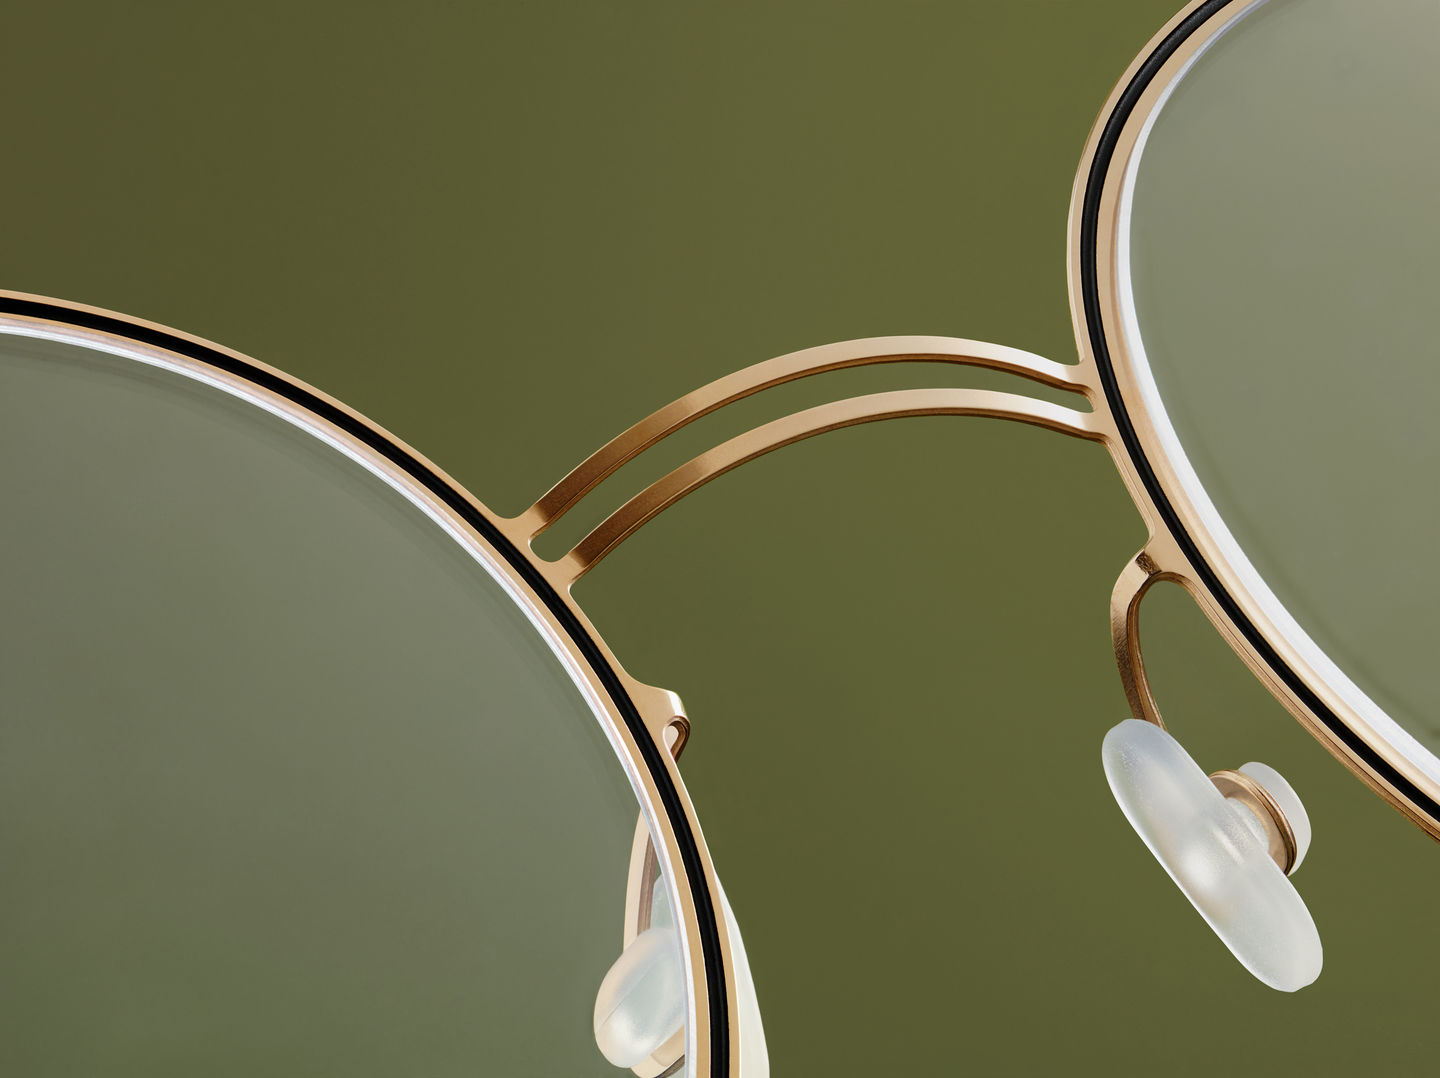 mykita-studio-optical-6-4-closeup.jpg